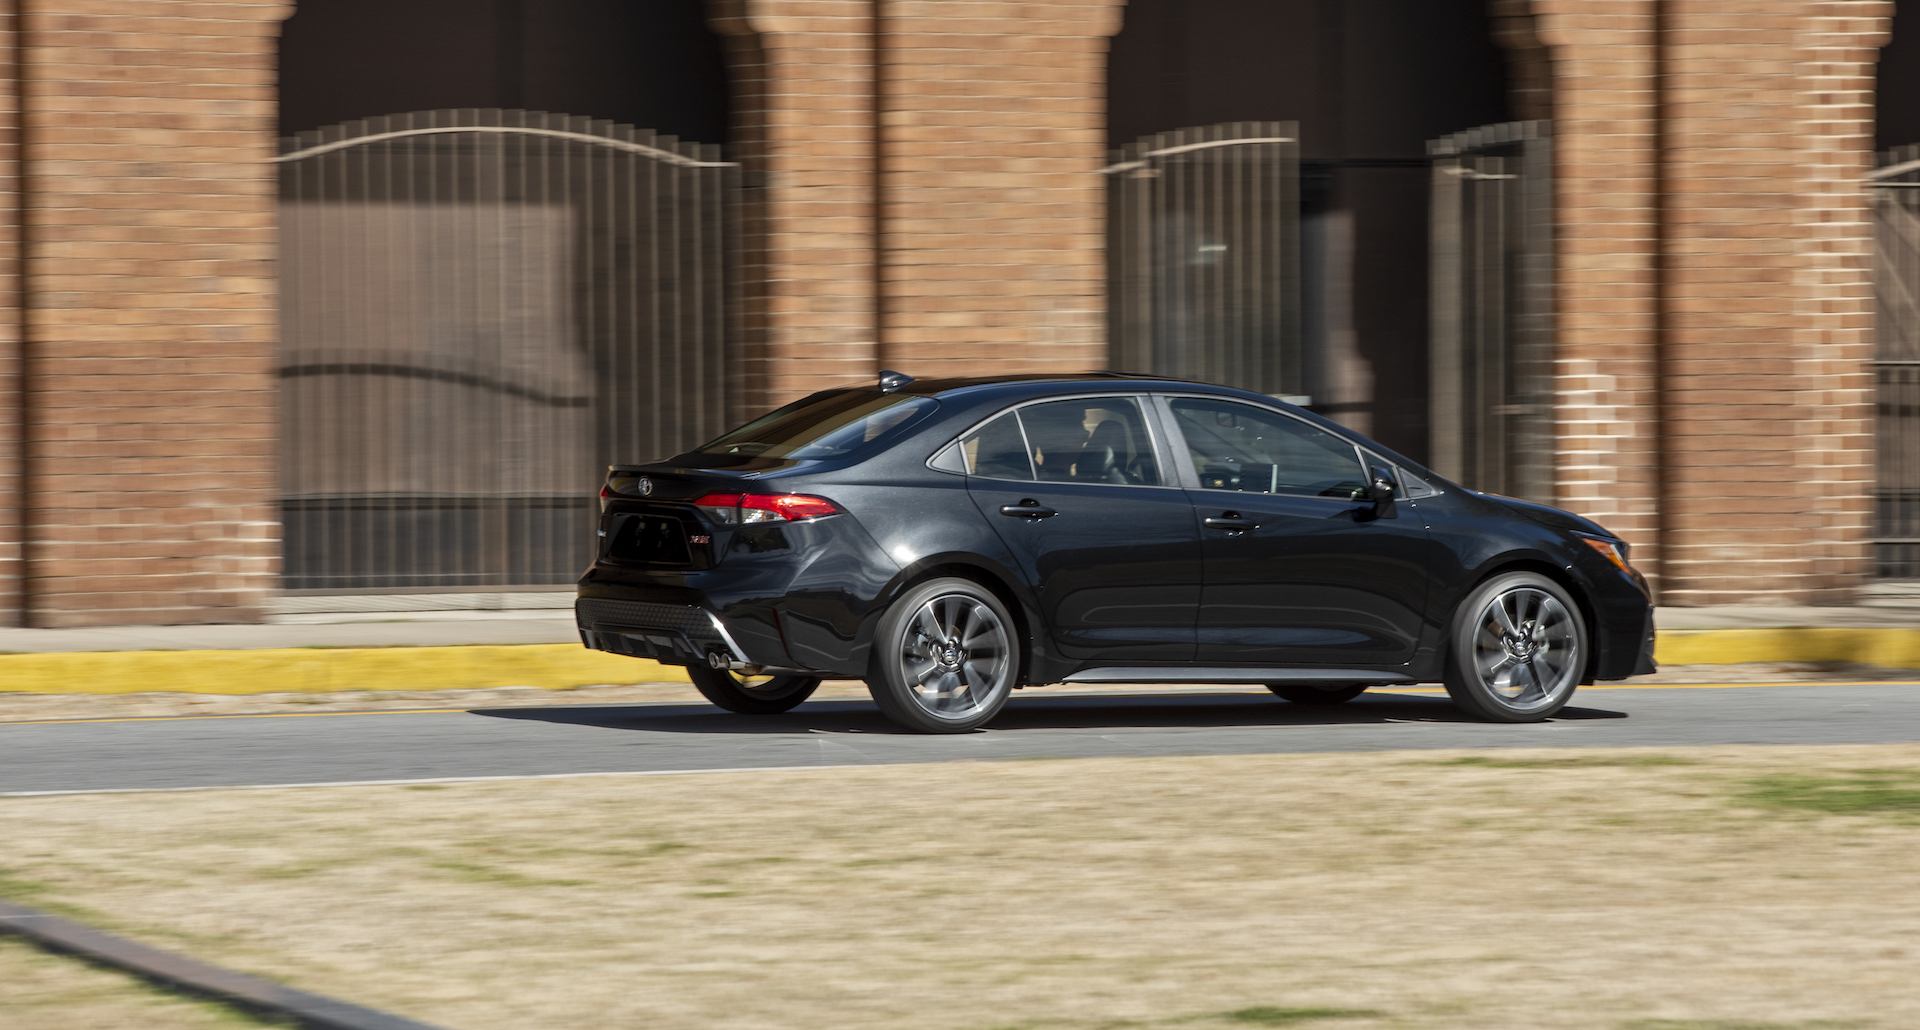 2020_Corolla_XSE_BlackSandPearl_025_v1_current